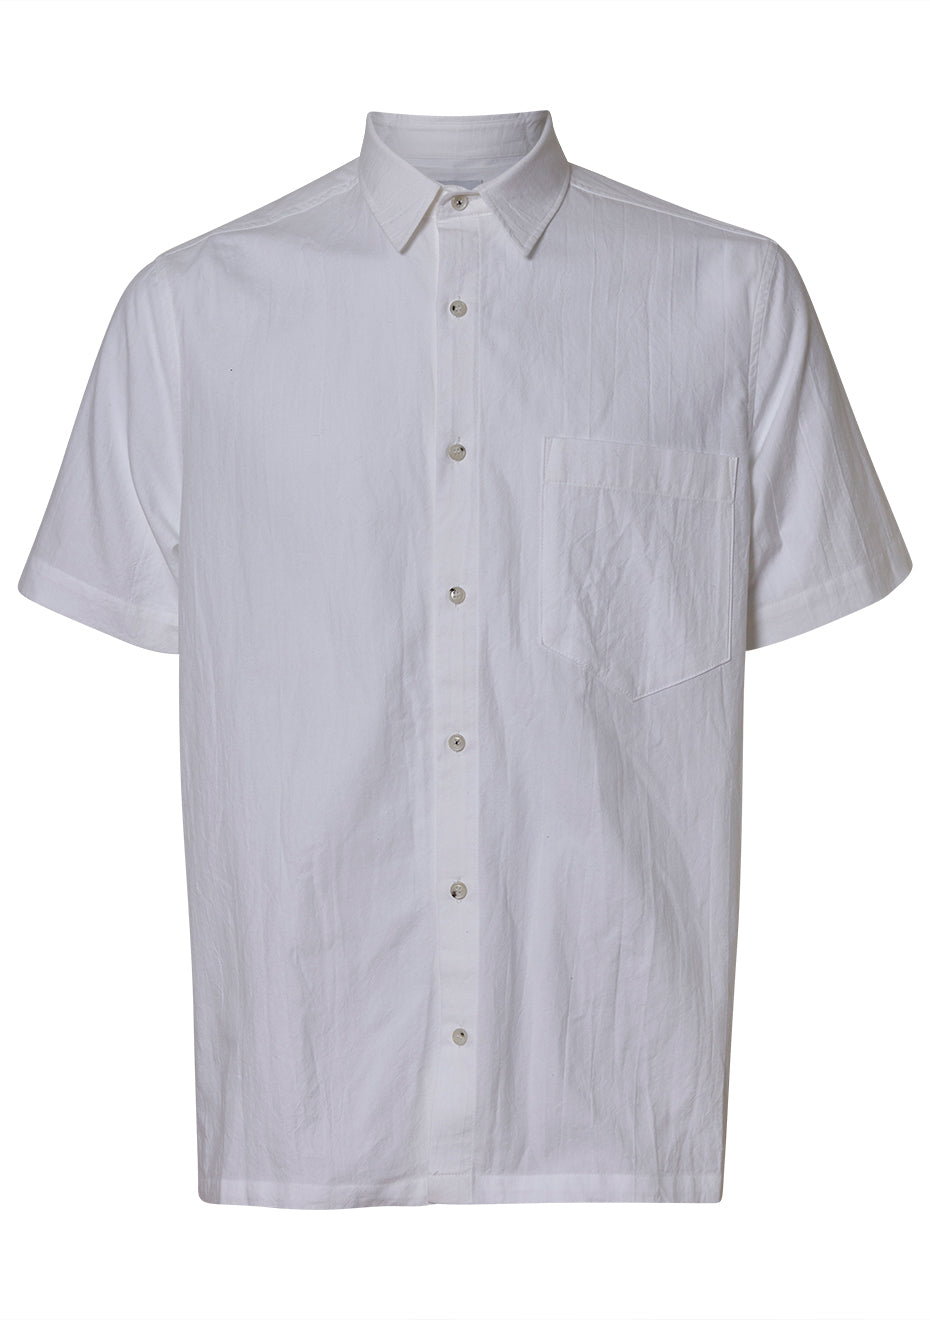 Adam White Shirt